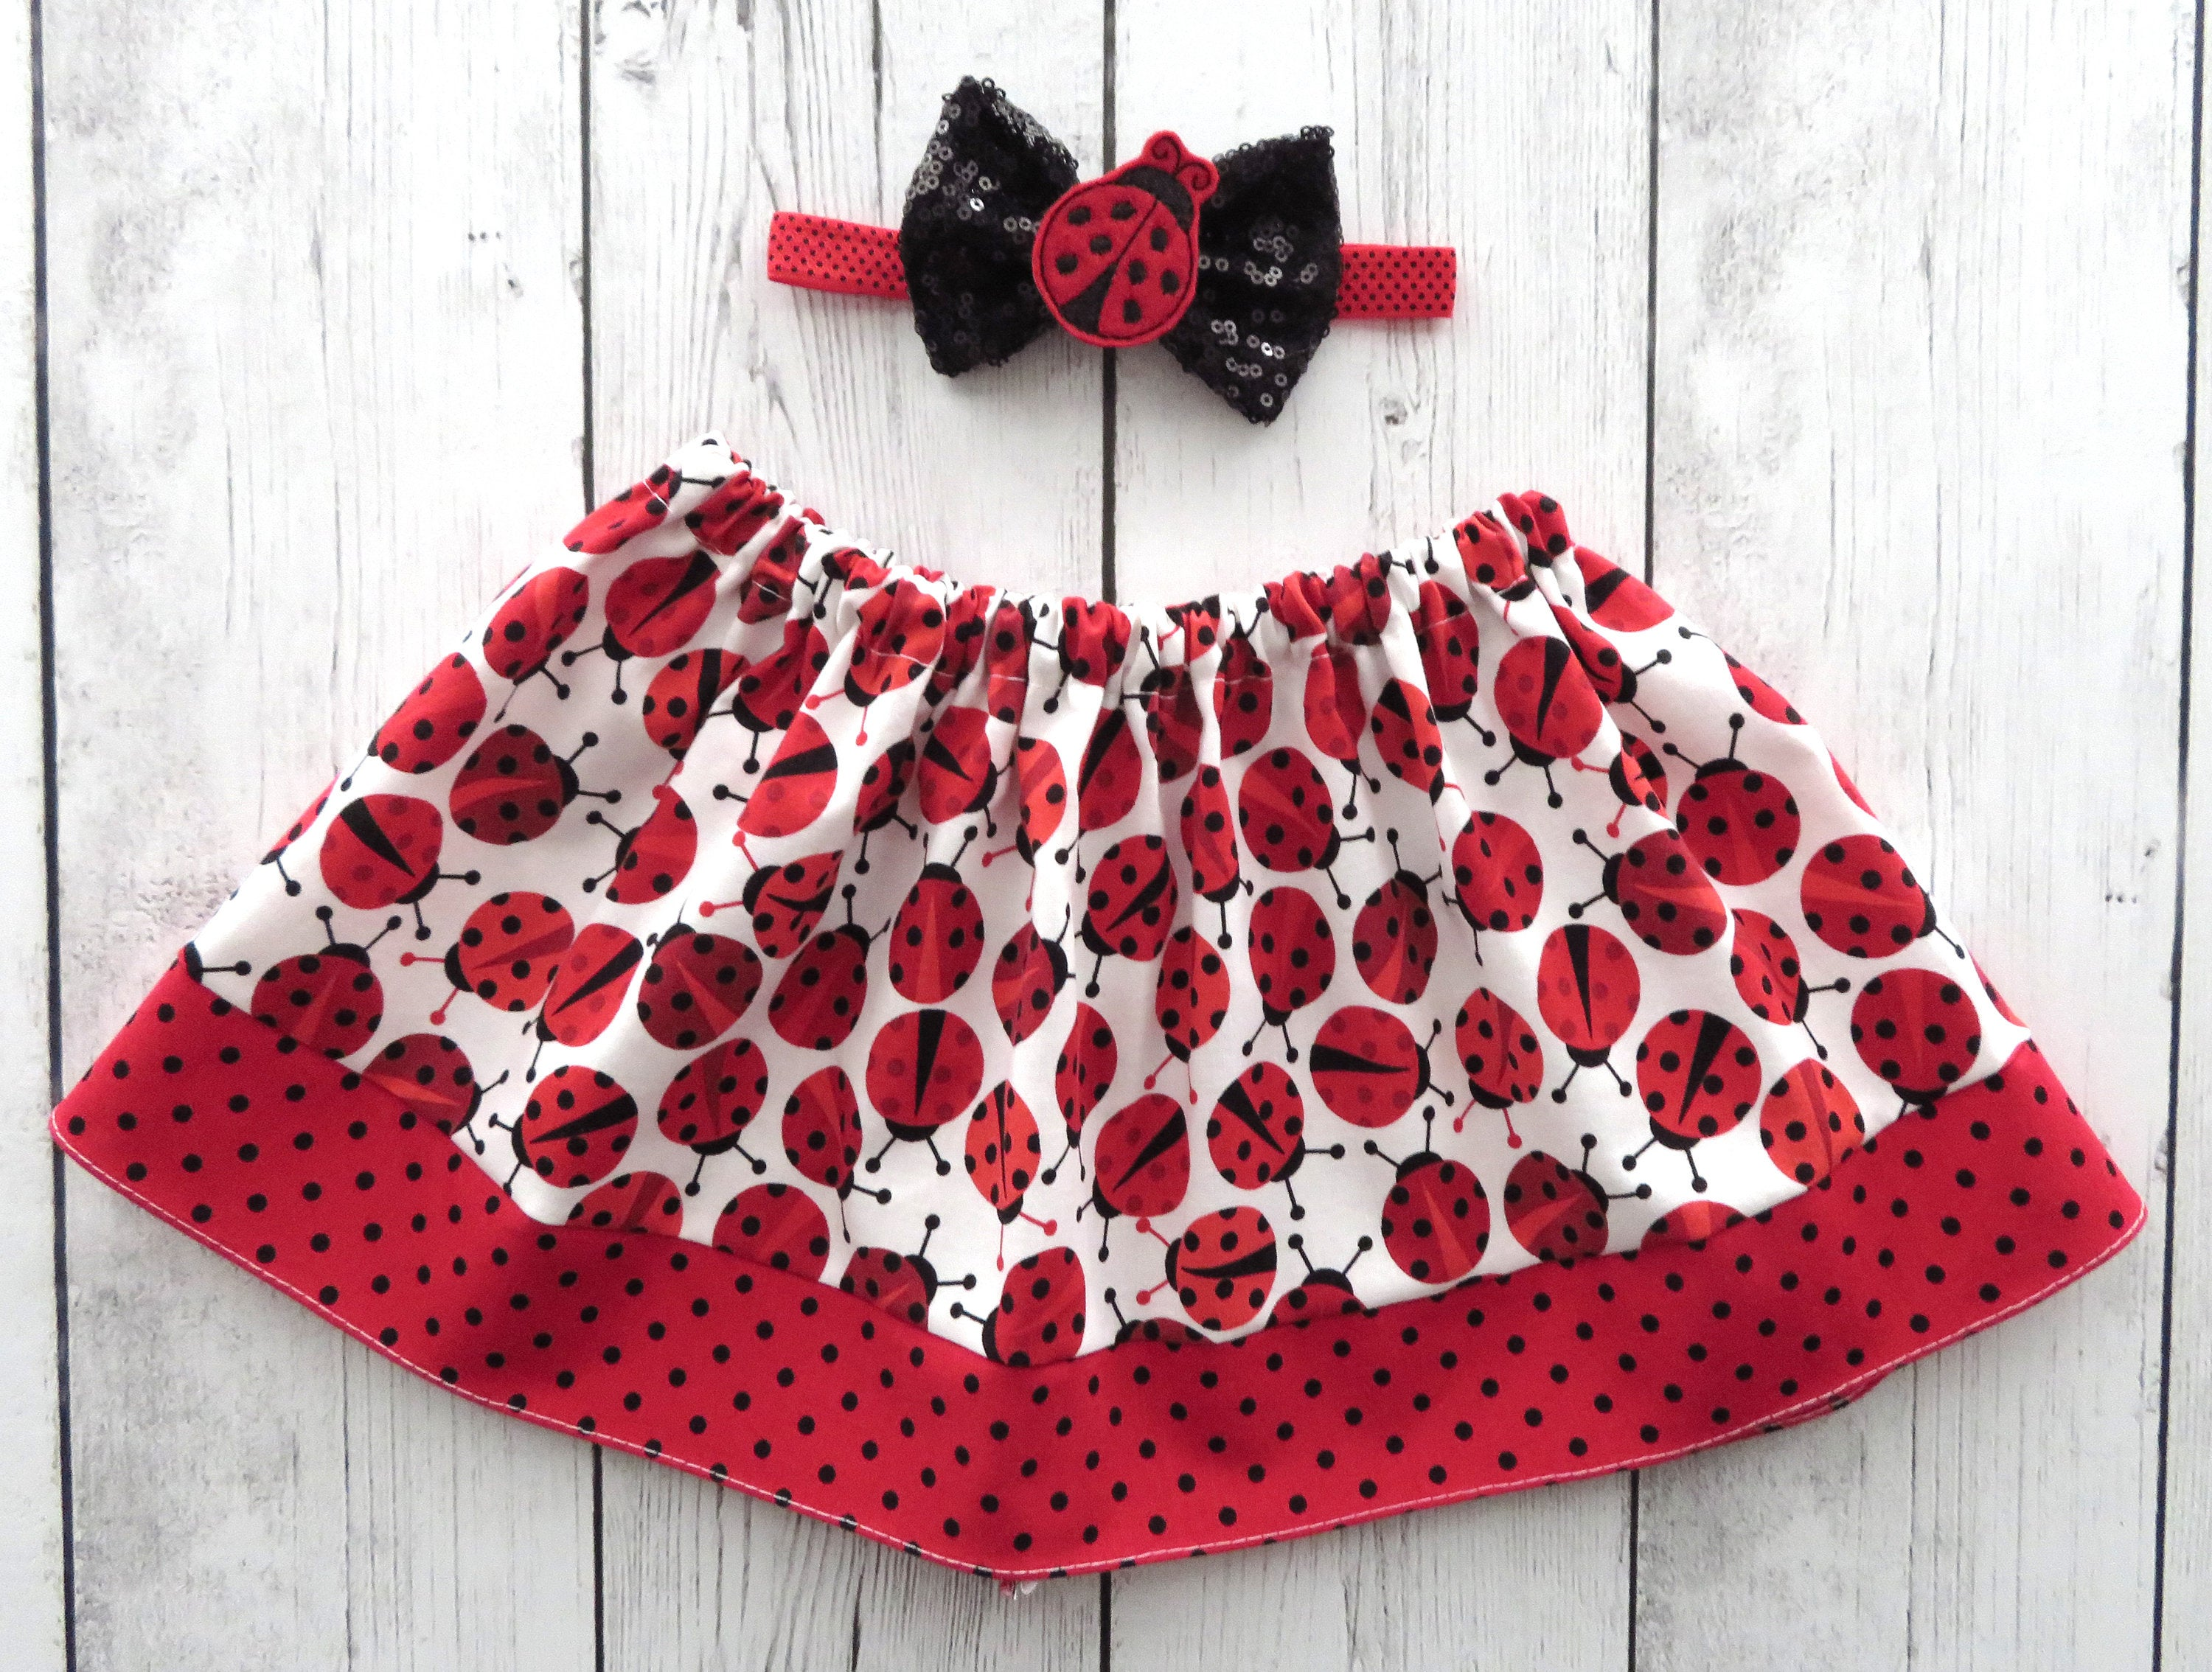 Ladybug Skirt for baby girl in red and black print - ladybug 1st birthday, baby girl skirt, twirl skirt, ladybug birthday, red black skirt